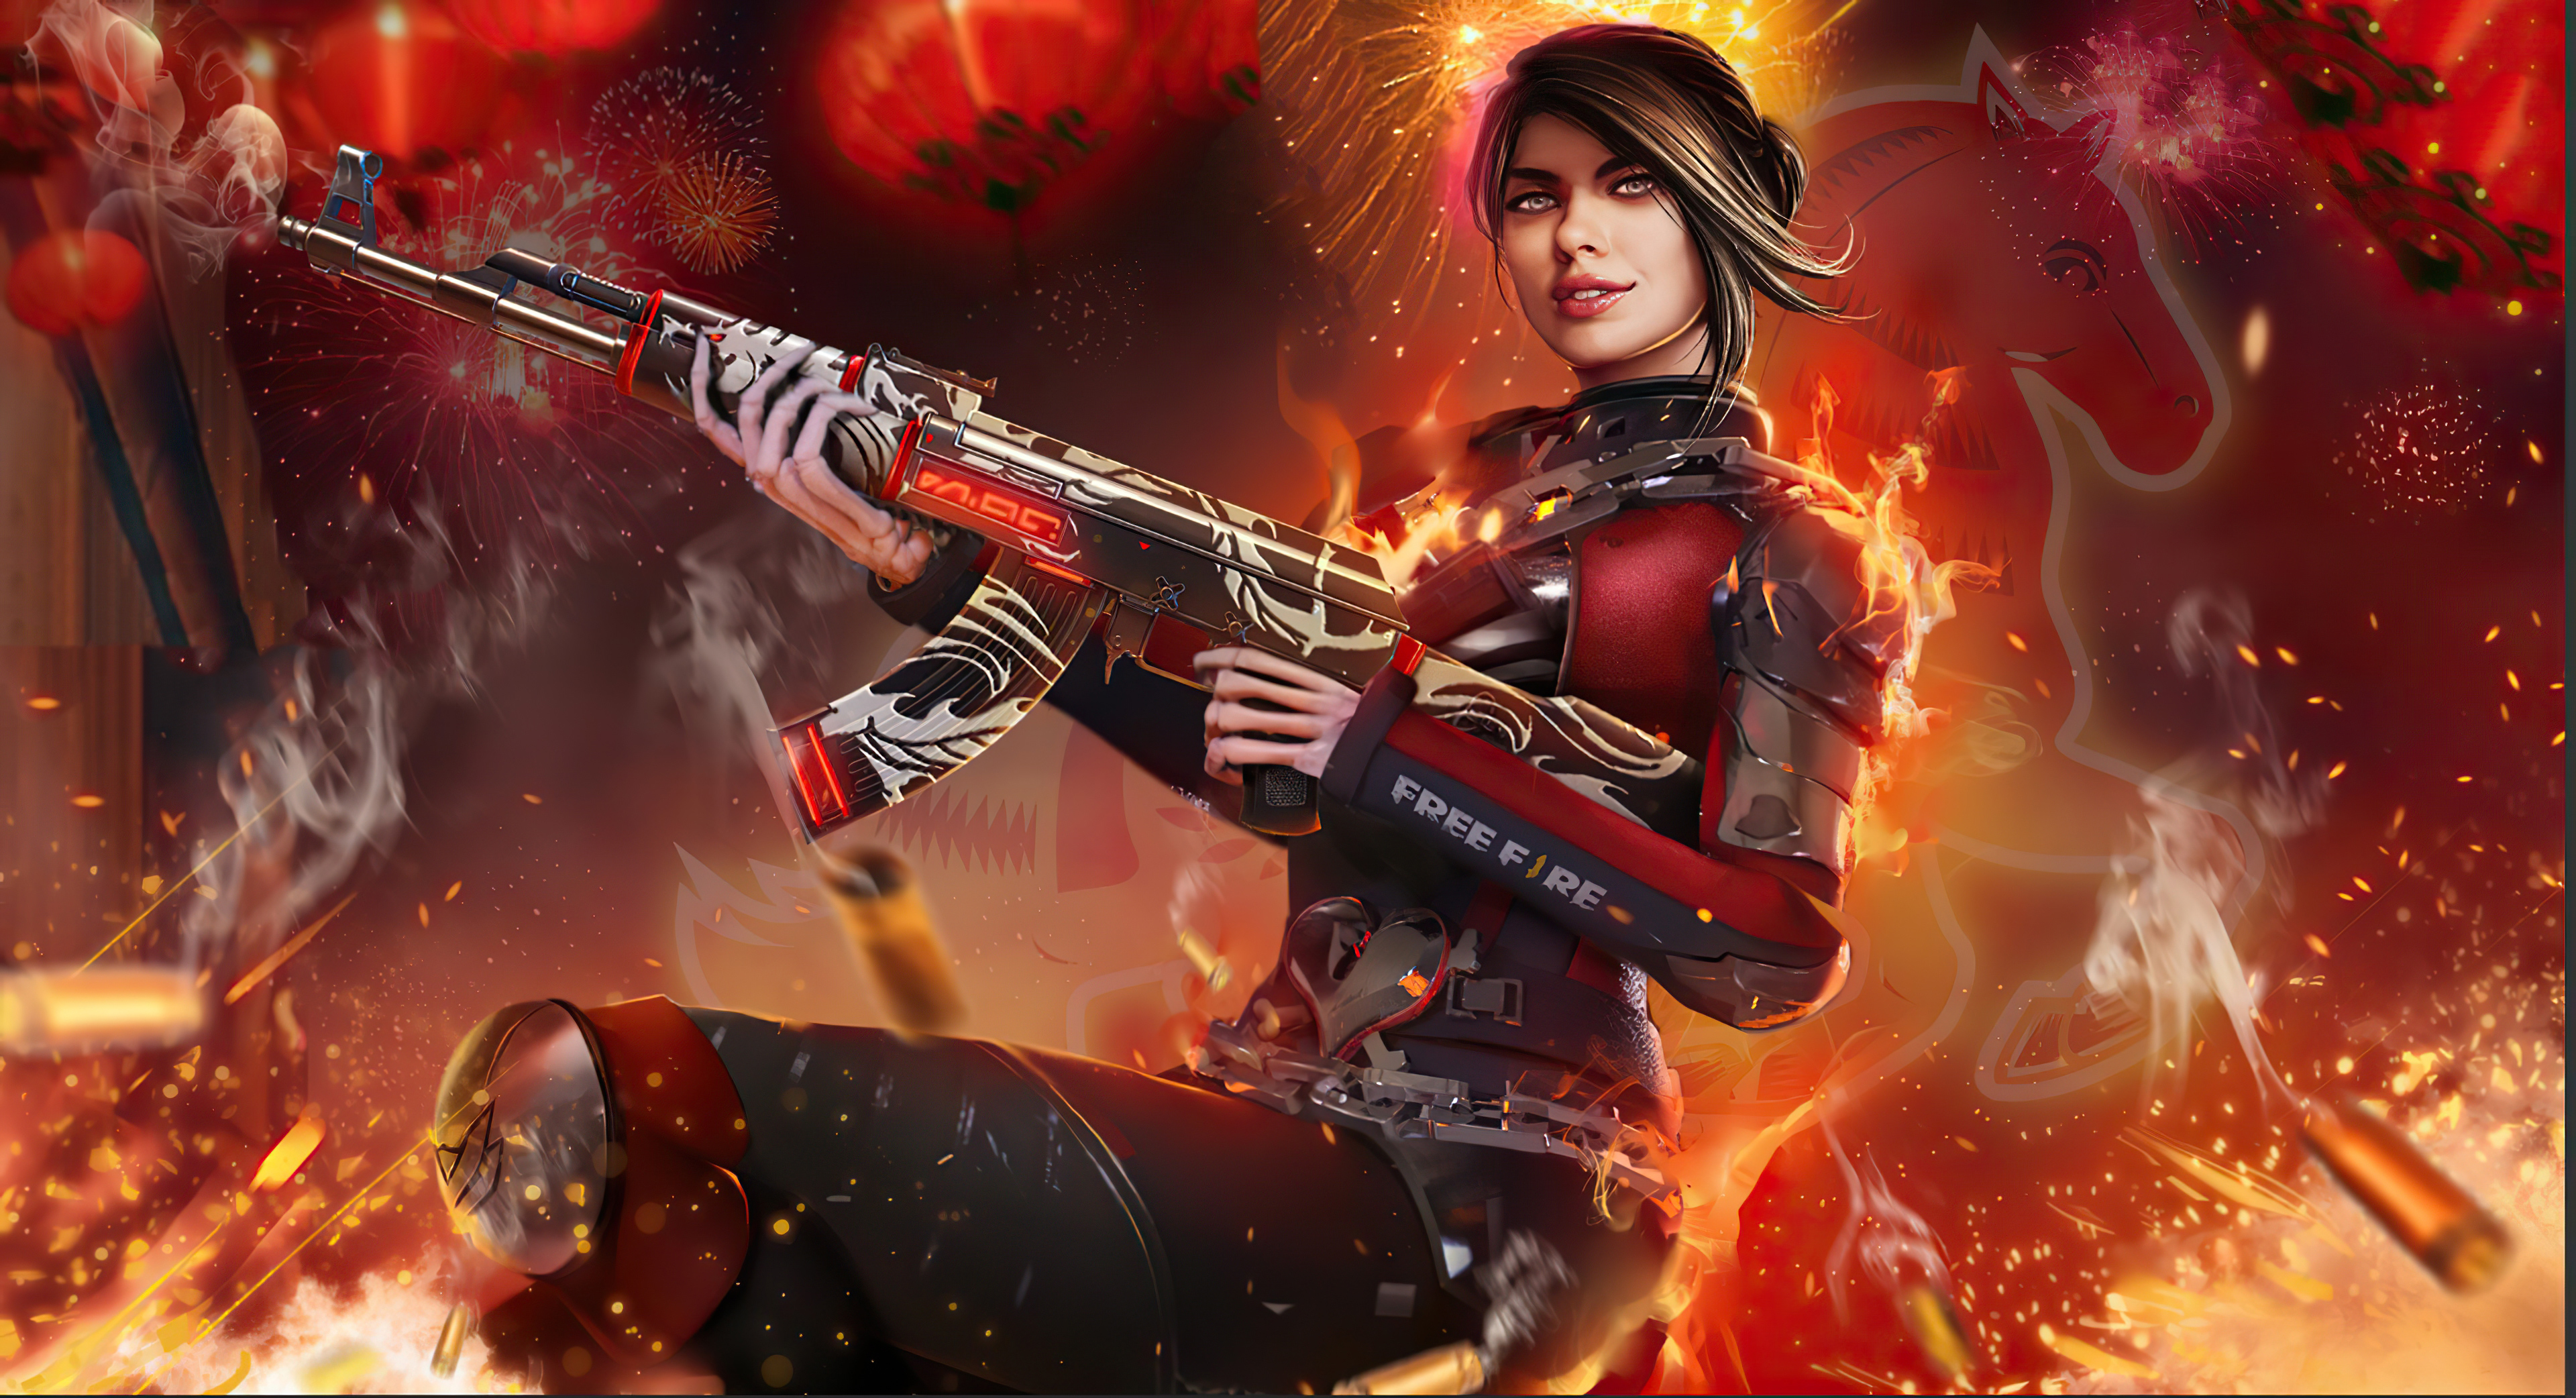 1440x900 Garena Free Fire Sniper 1440x900 Wallpaper Hd Games 4k Wallpapers Images Photos And Background